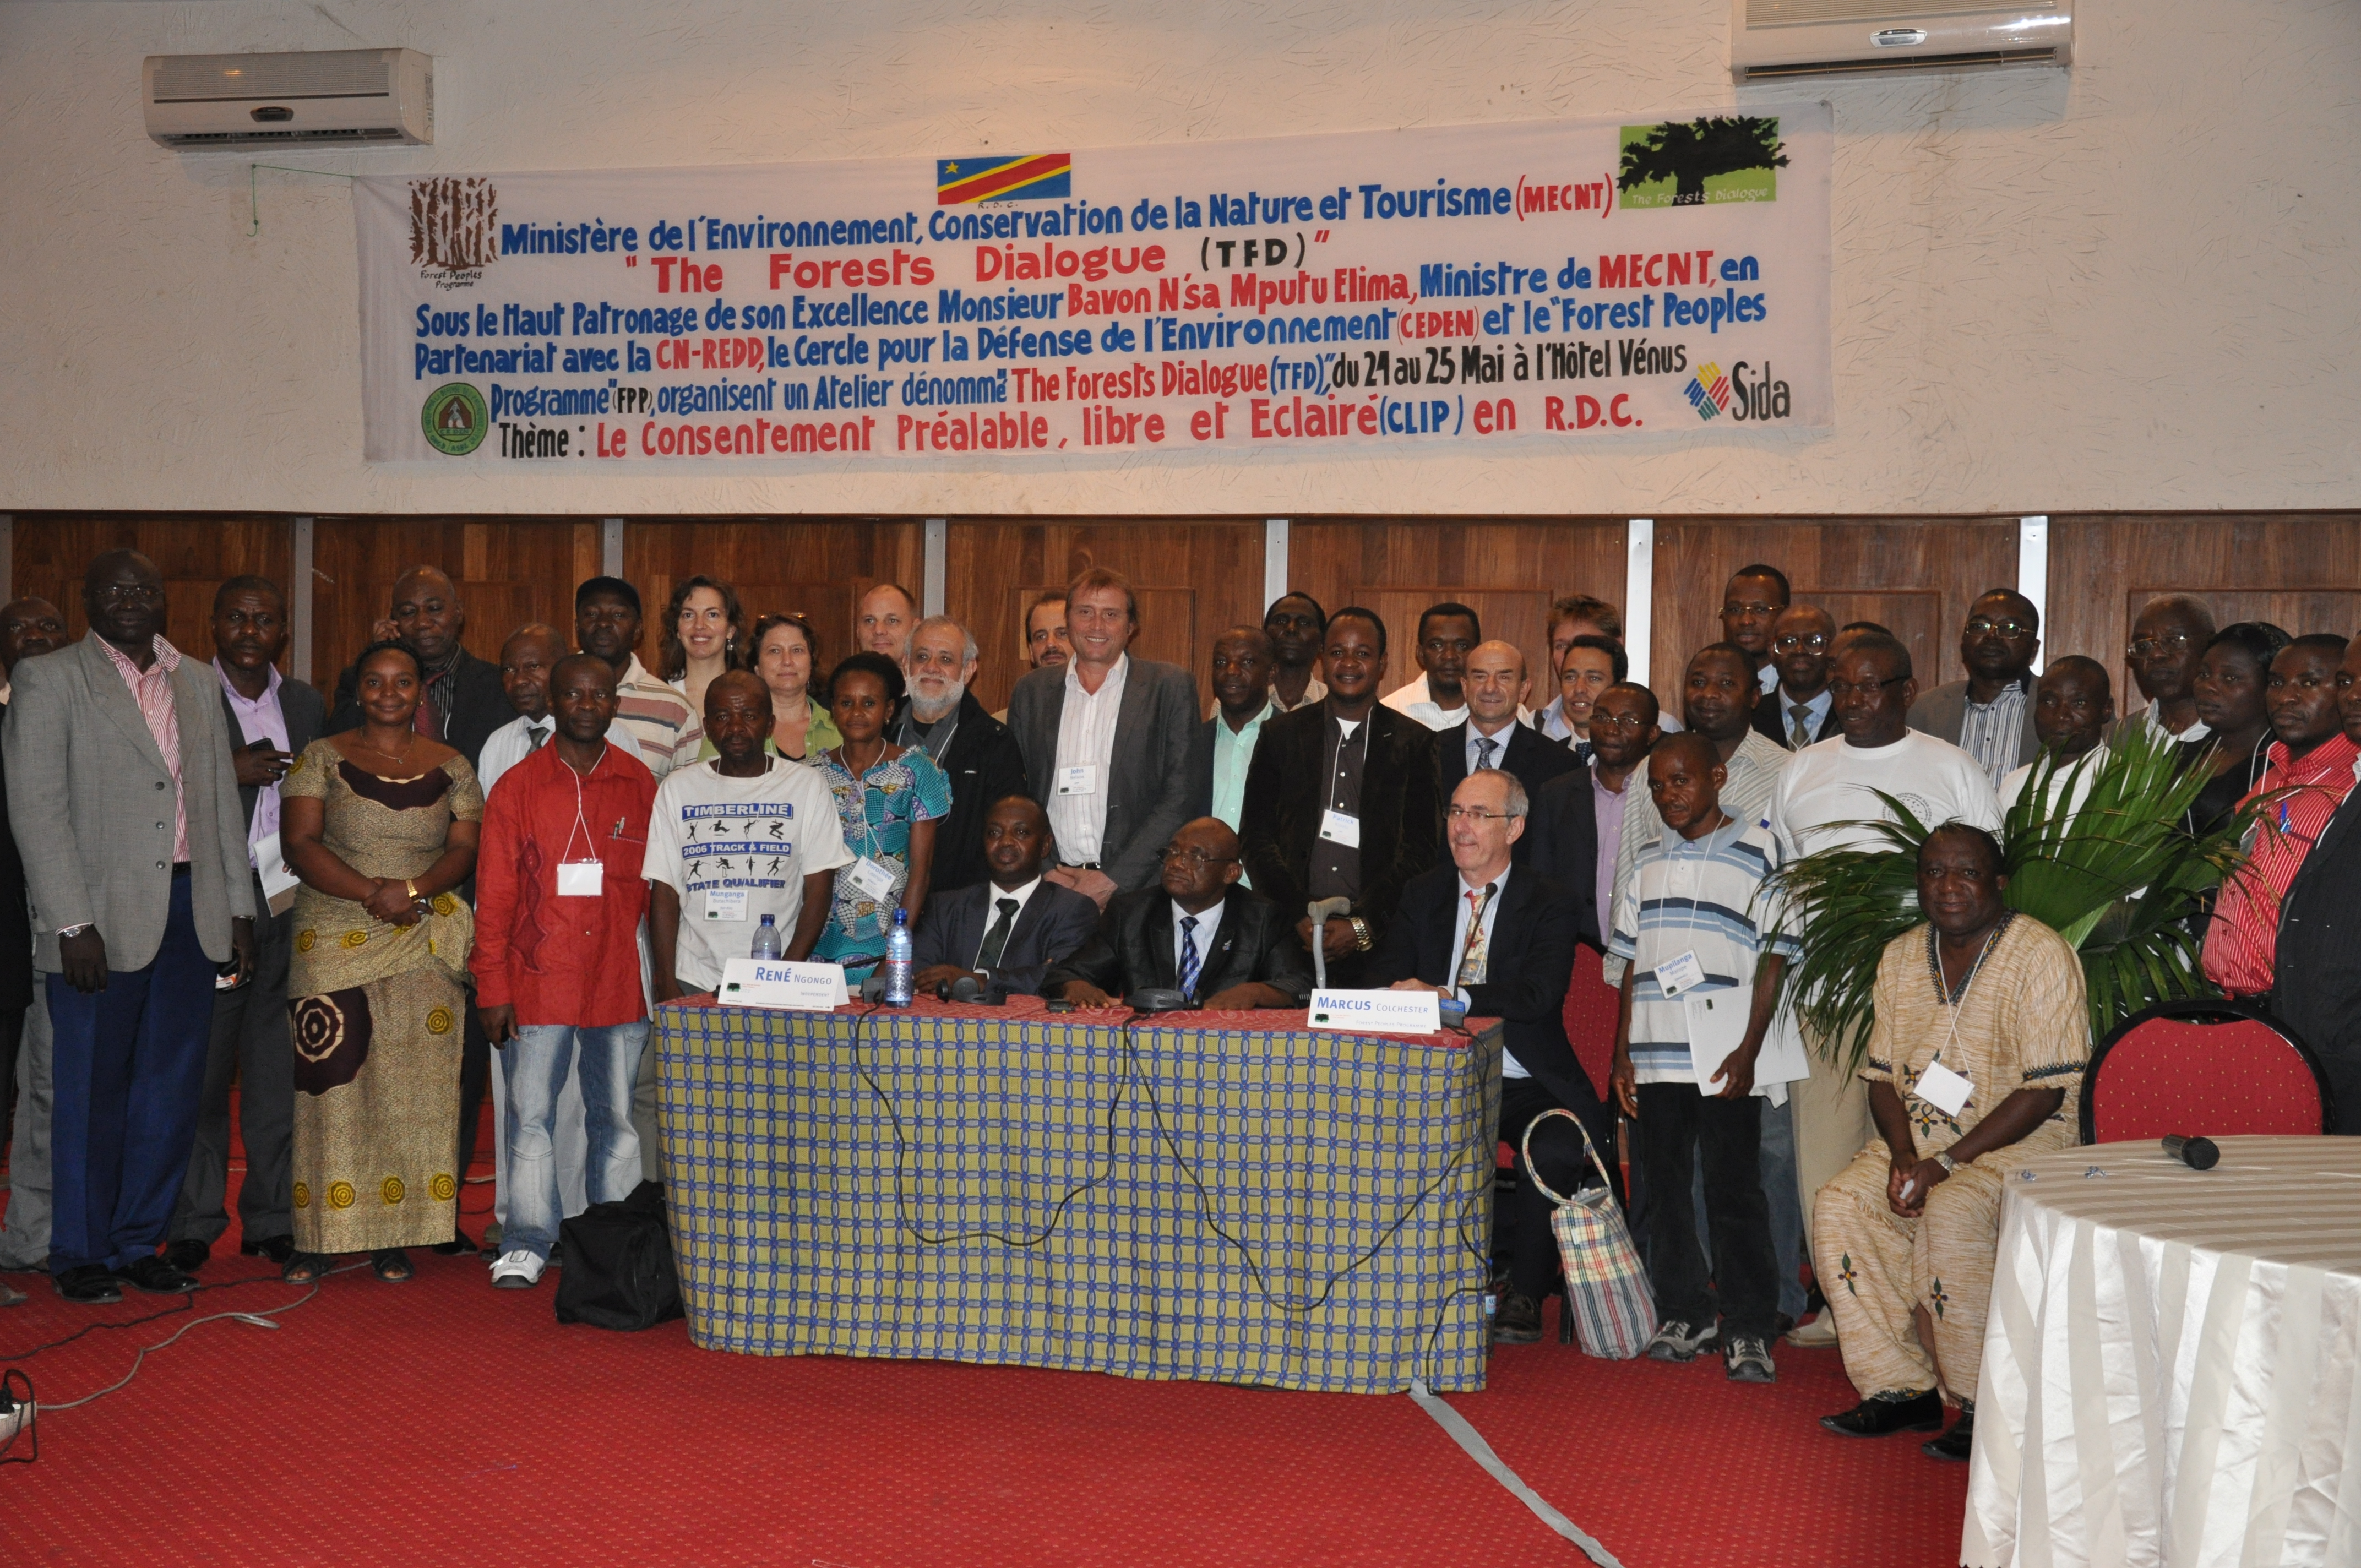 Field Dialogue on FPIC in the Democratic Republic of Congo